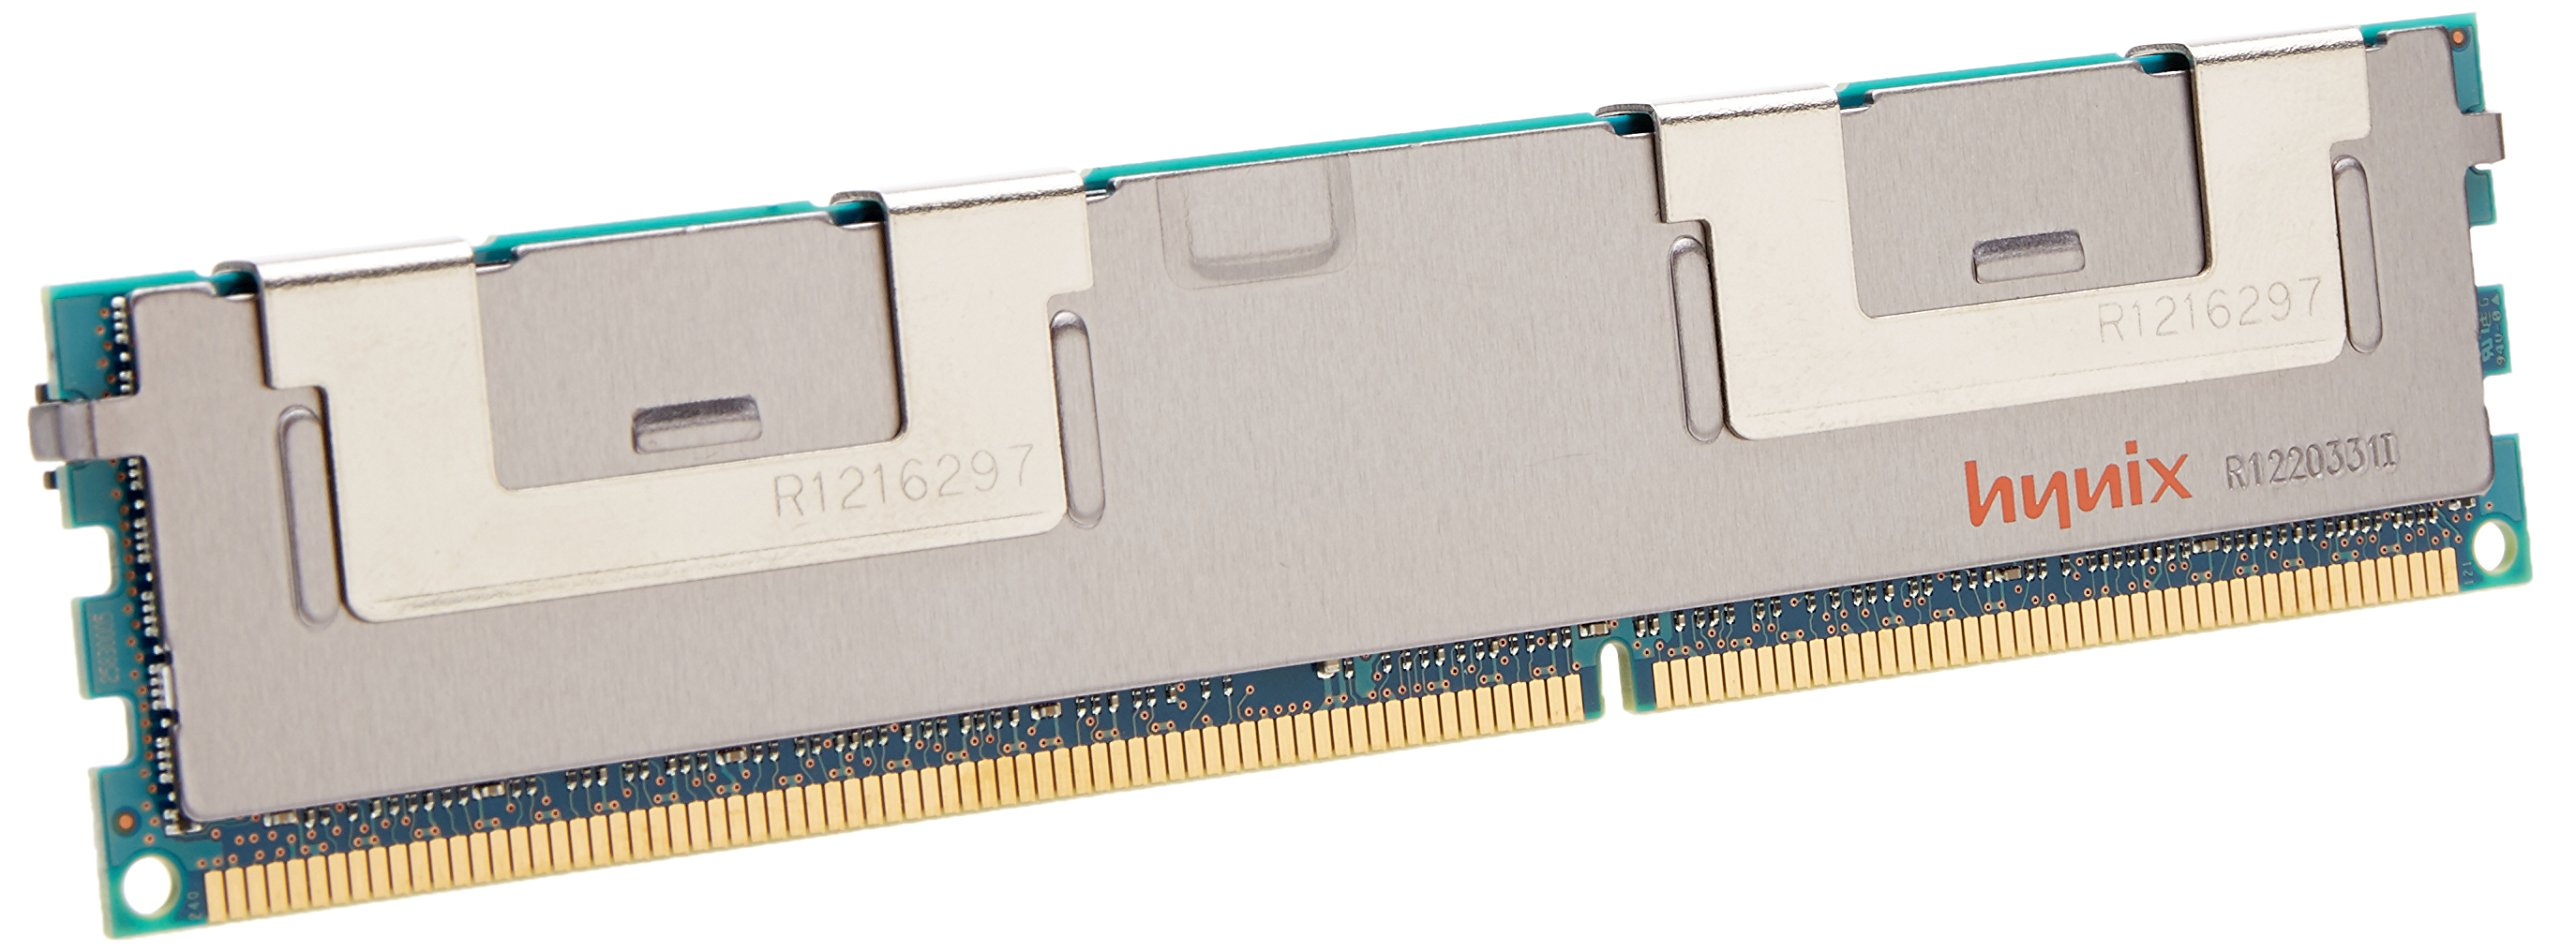 Acp - Memory Upgrades Am1333d3drrn9/8g Ram Module - 8 Gb - Ddr3 Sdram Ecc - Registered - 240-pin Dimm (am1333d3drrn9-8g)